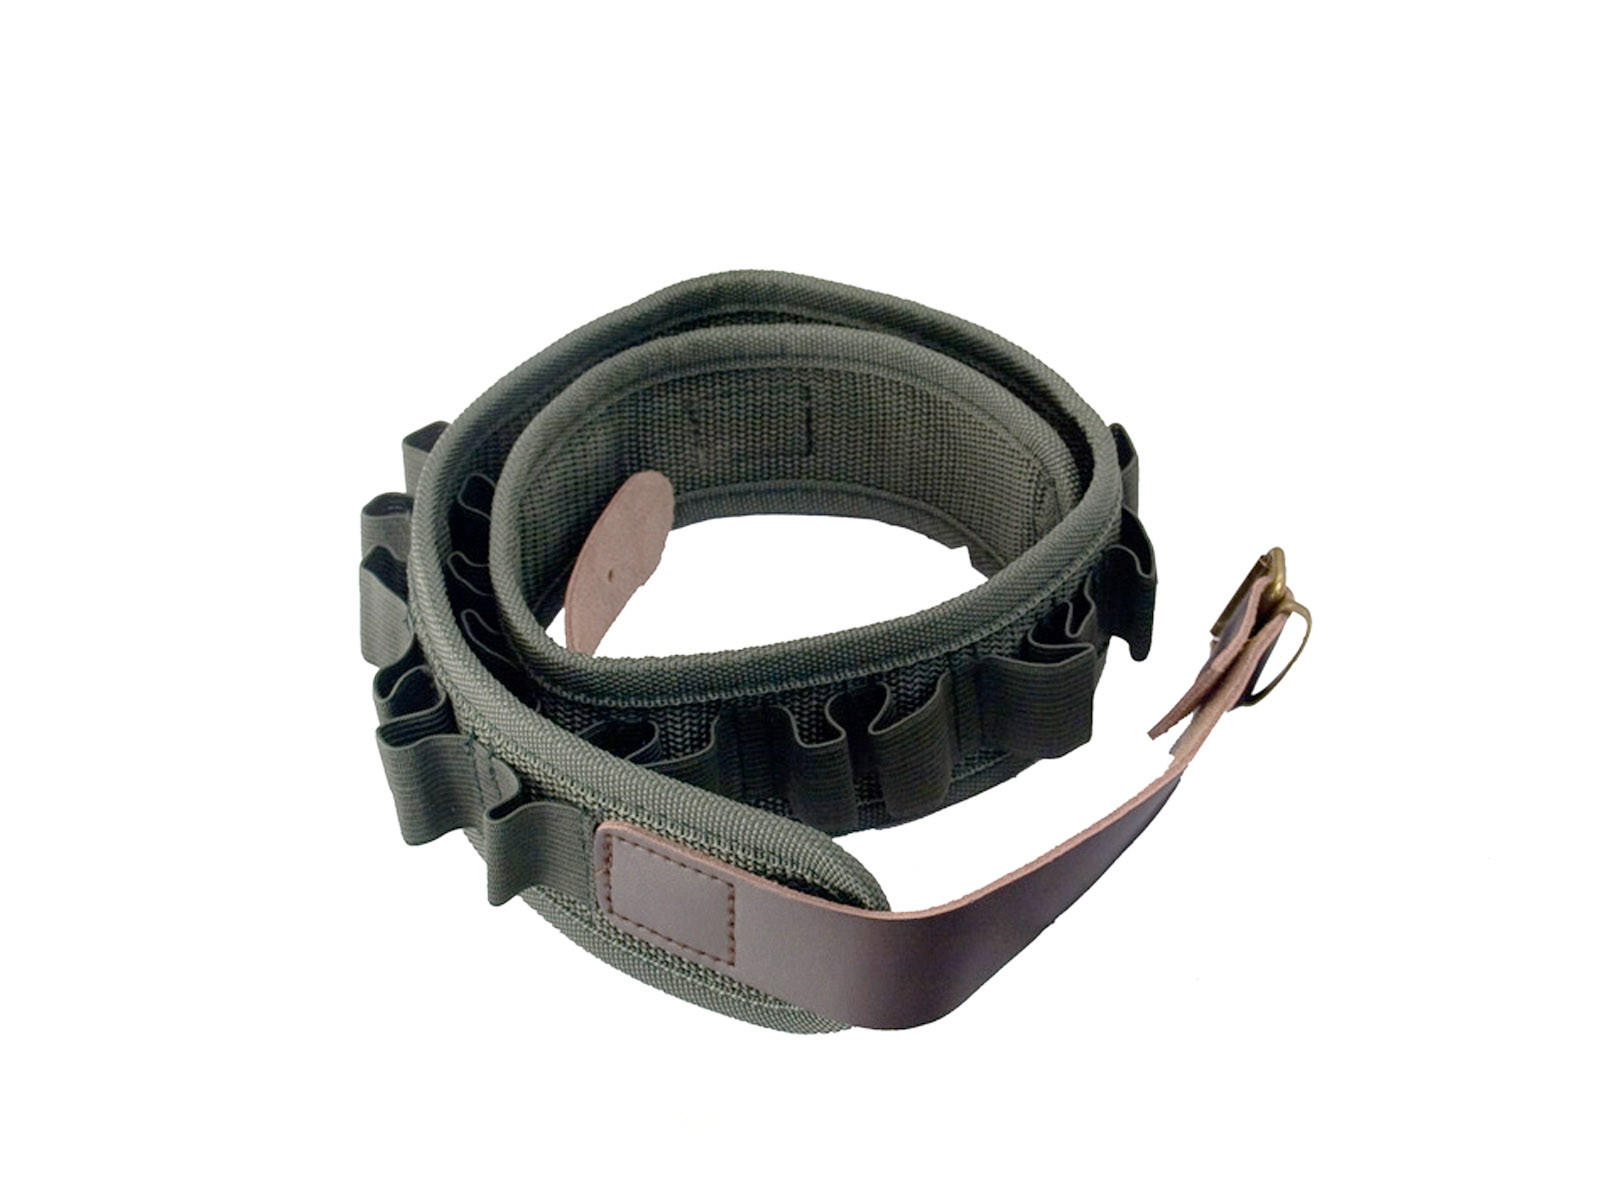 Napier Cartridge Belt 12 and 20 Gauge